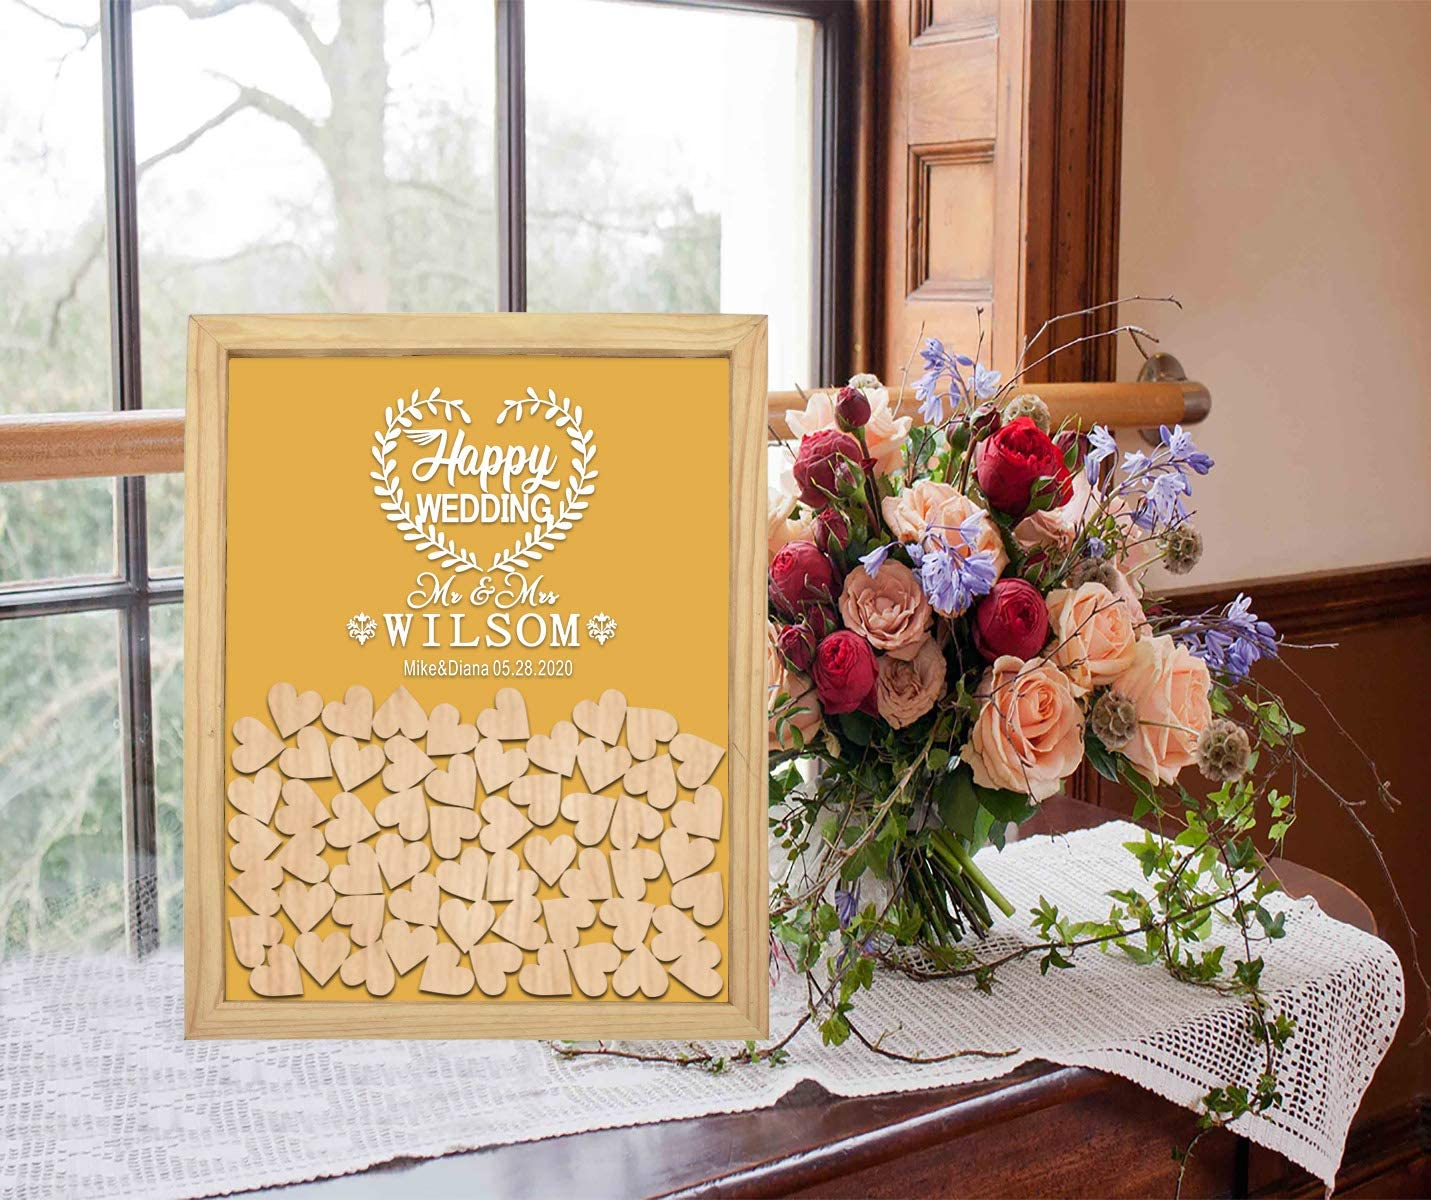 PotteLove Personalized Drop Box Wooden New Shipping Free Wedding Frame with Tampa Mall Happy